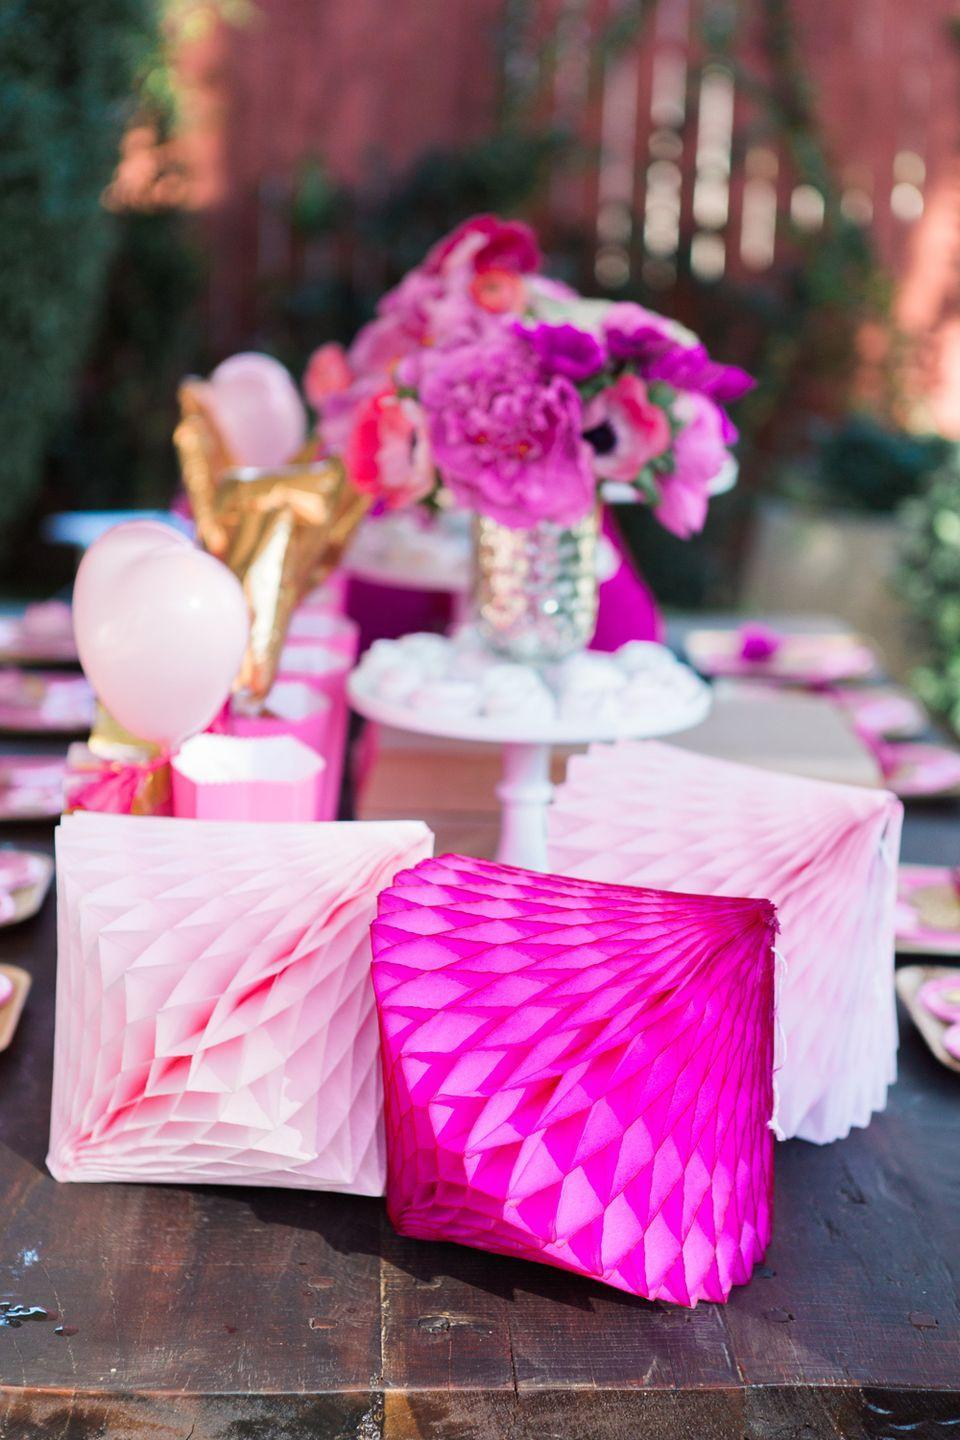 "<p>Rose-petal pink and hot pink honeycomb lanterns lend any vignette or Valentine's Day party a sense of lighthearted buoyancy. Pair with matching flowers to continue the color palette. </p><p><em>Via <a href=""http://www.twinkandsis.com/blog/2015/2/12/mommy-and-toddler-valentine-party"" rel=""nofollow noopener"" target=""_blank"" data-ylk=""slk:Marlan Willardson and Laurén LaRocca of Twink + Sis"" class=""link rapid-noclick-resp"">Marlan Willardson and Laurén LaRocca of Twink + Sis</a></em></p><p><a class=""link rapid-noclick-resp"" href=""https://go.redirectingat.com?id=74968X1596630&url=https%3A%2F%2Fwww.etsy.com%2Flisting%2F493054684%2Fheart-shaped-honeycomb-decoration%3Fgpla%3D1%26gao%3D1%26gclid%3DCjwKCAiA9vOABhBfEiwATCi7GHle7l_4079UkQE5ix391w9XqiqMEKXJzm87-3cVeTzT5cfND-JAcBoCi-oQAvD_BwE&sref=https%3A%2F%2Fwww.elledecor.com%2Flife-culture%2Ffun-at-home%2Fg2387%2Fvalentines-day-decor%2F"" rel=""nofollow noopener"" target=""_blank"" data-ylk=""slk:GET THE LOOK"">GET THE LOOK</a><em><br>Heart-Shaped Honeycomb Decoration, Etsy, $10.33</em></p>"